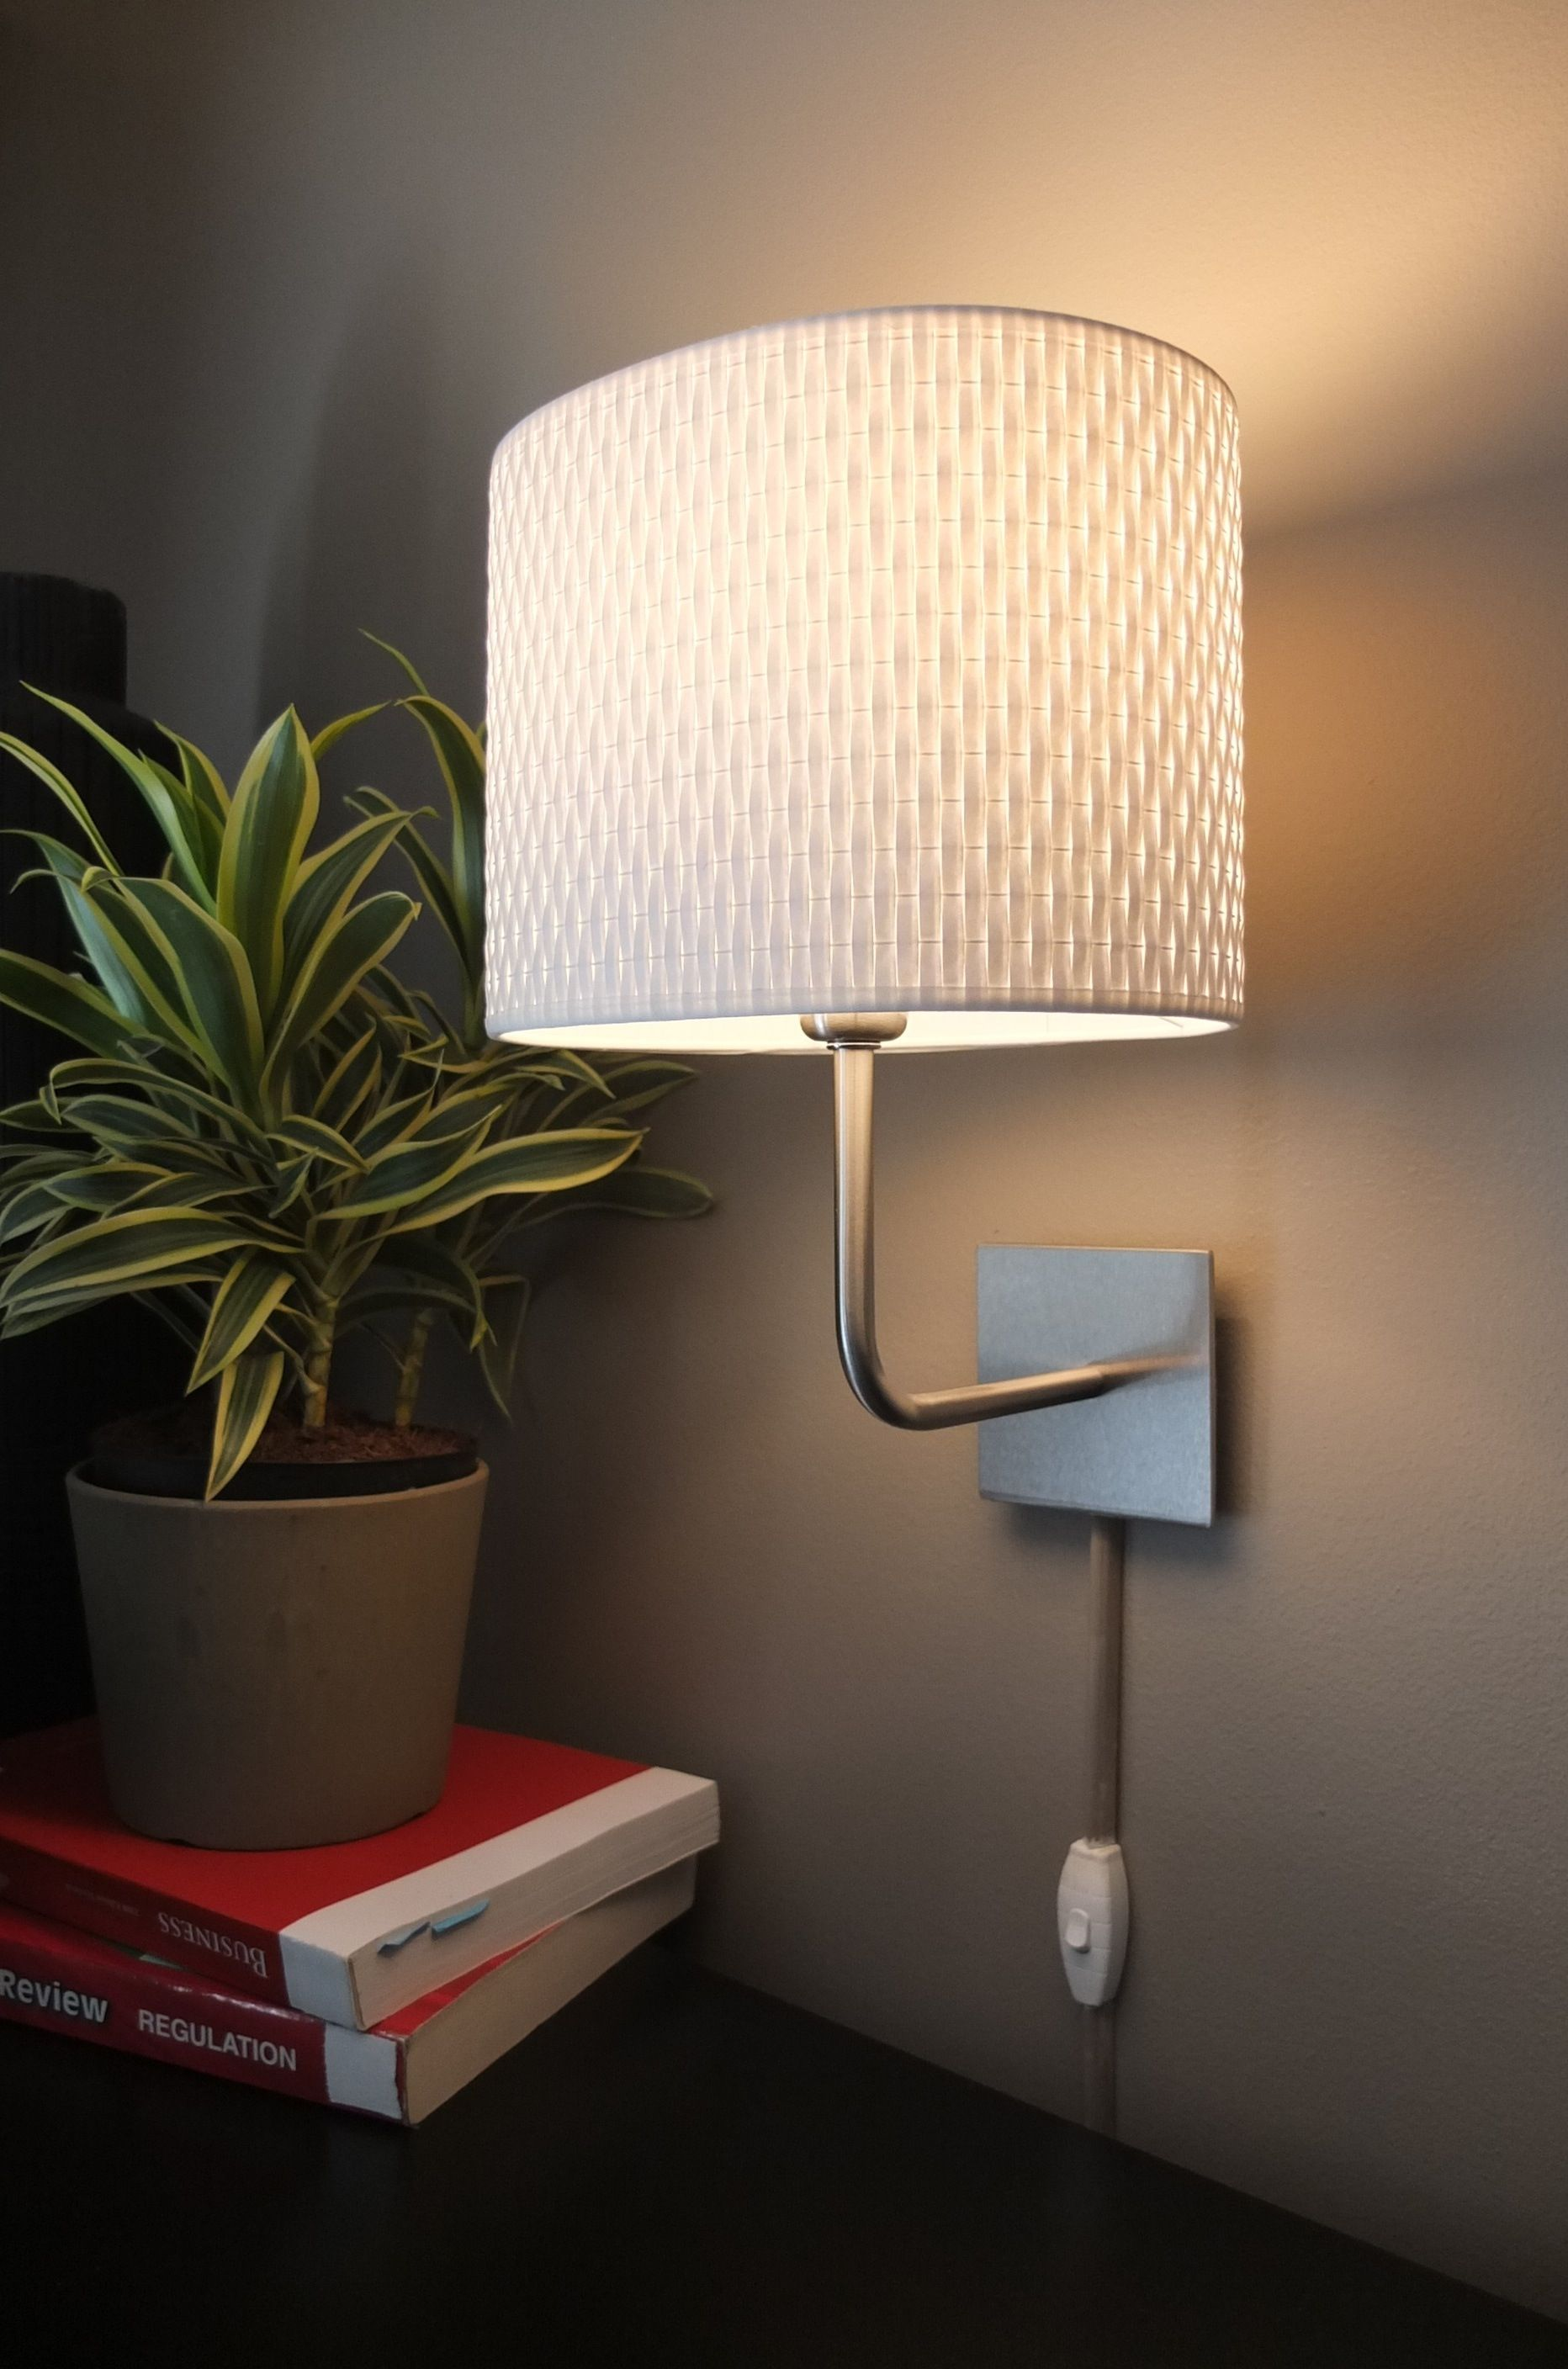 Wall mounted ikea lamps are an easy way to add light in a room wall mounted ikea lamps are an easy way to add light in a room without a ceiling fixture alng has two color choices and a coordinating floor and table mozeypictures Choice Image